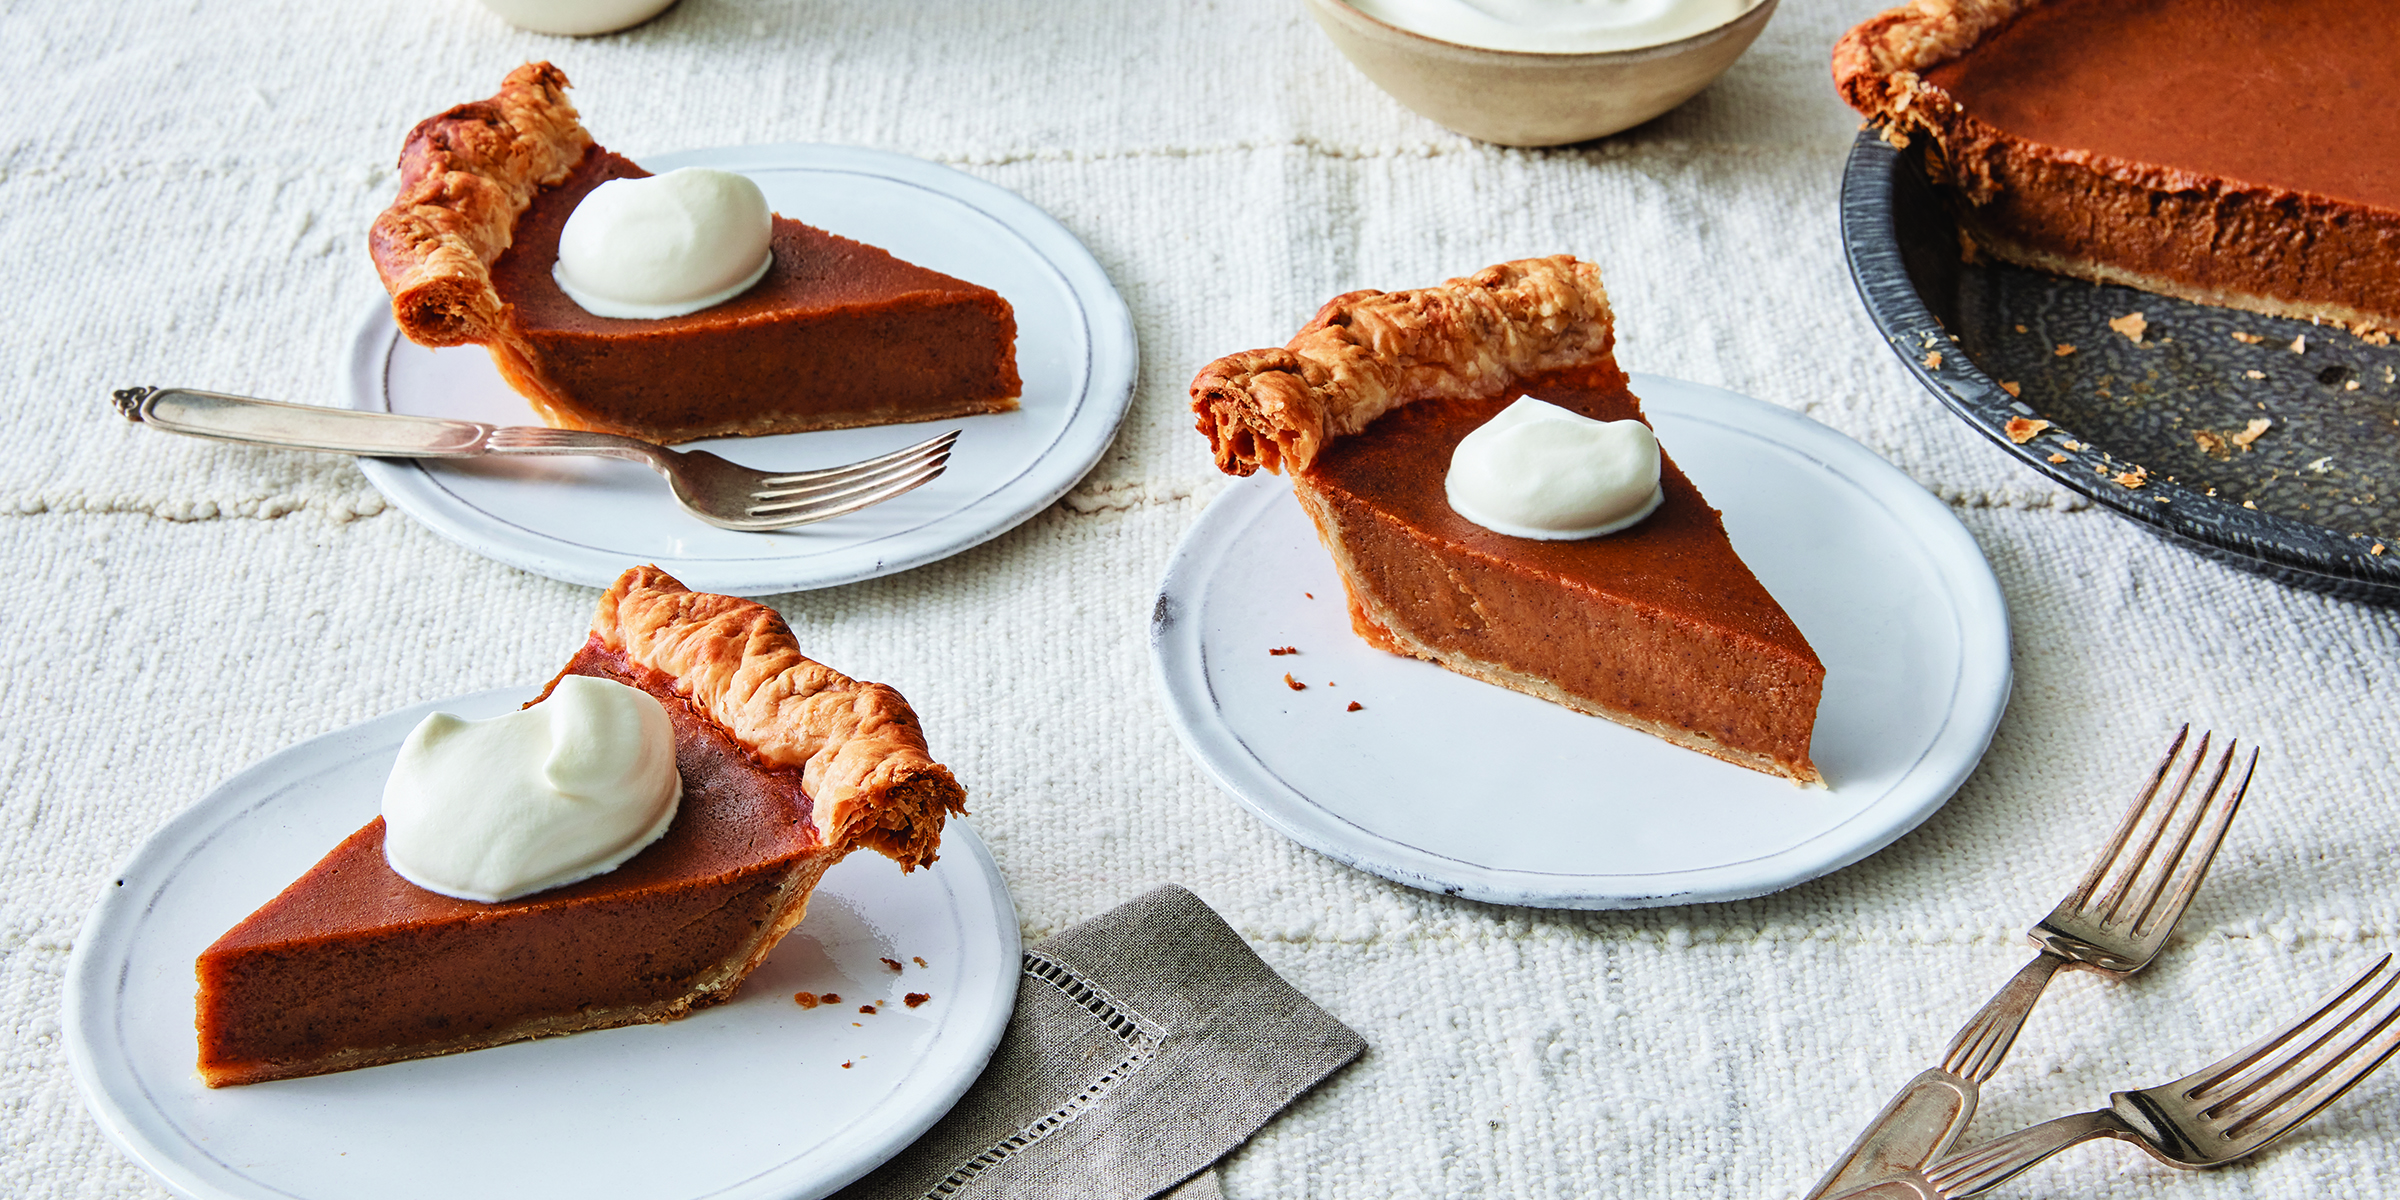 Allspice takes this sweet potato pie to a whole other flavor level